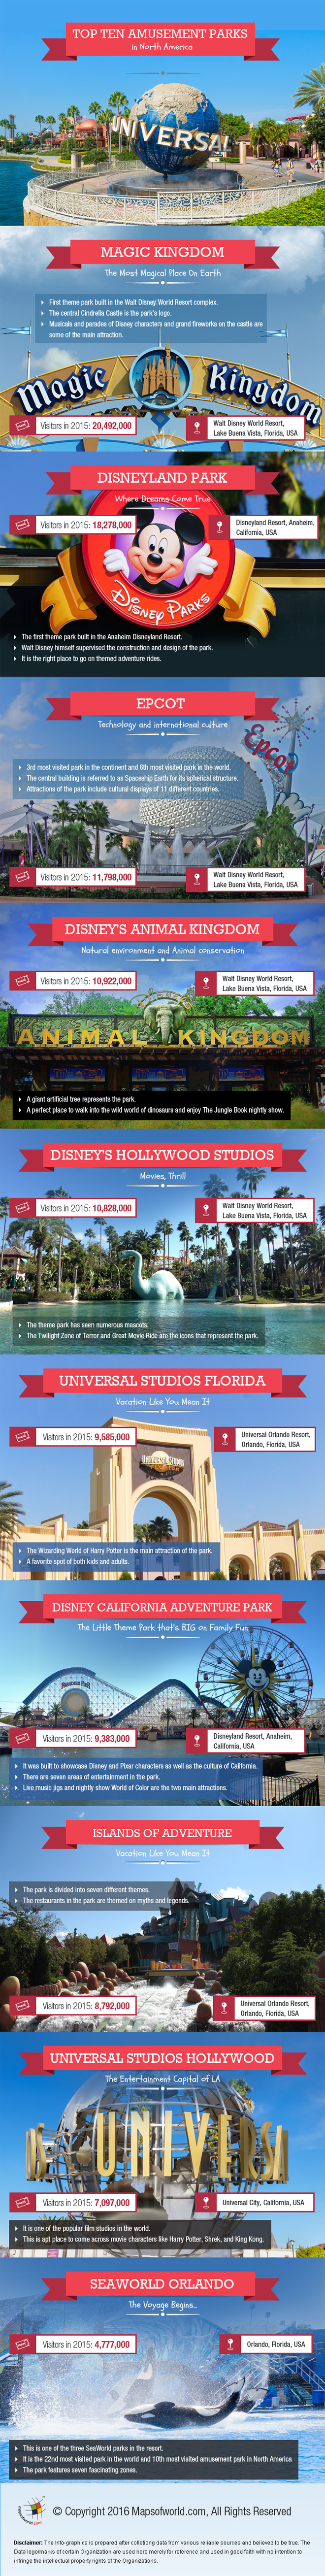 Top Infographic on Ten Amusement Parks in North America